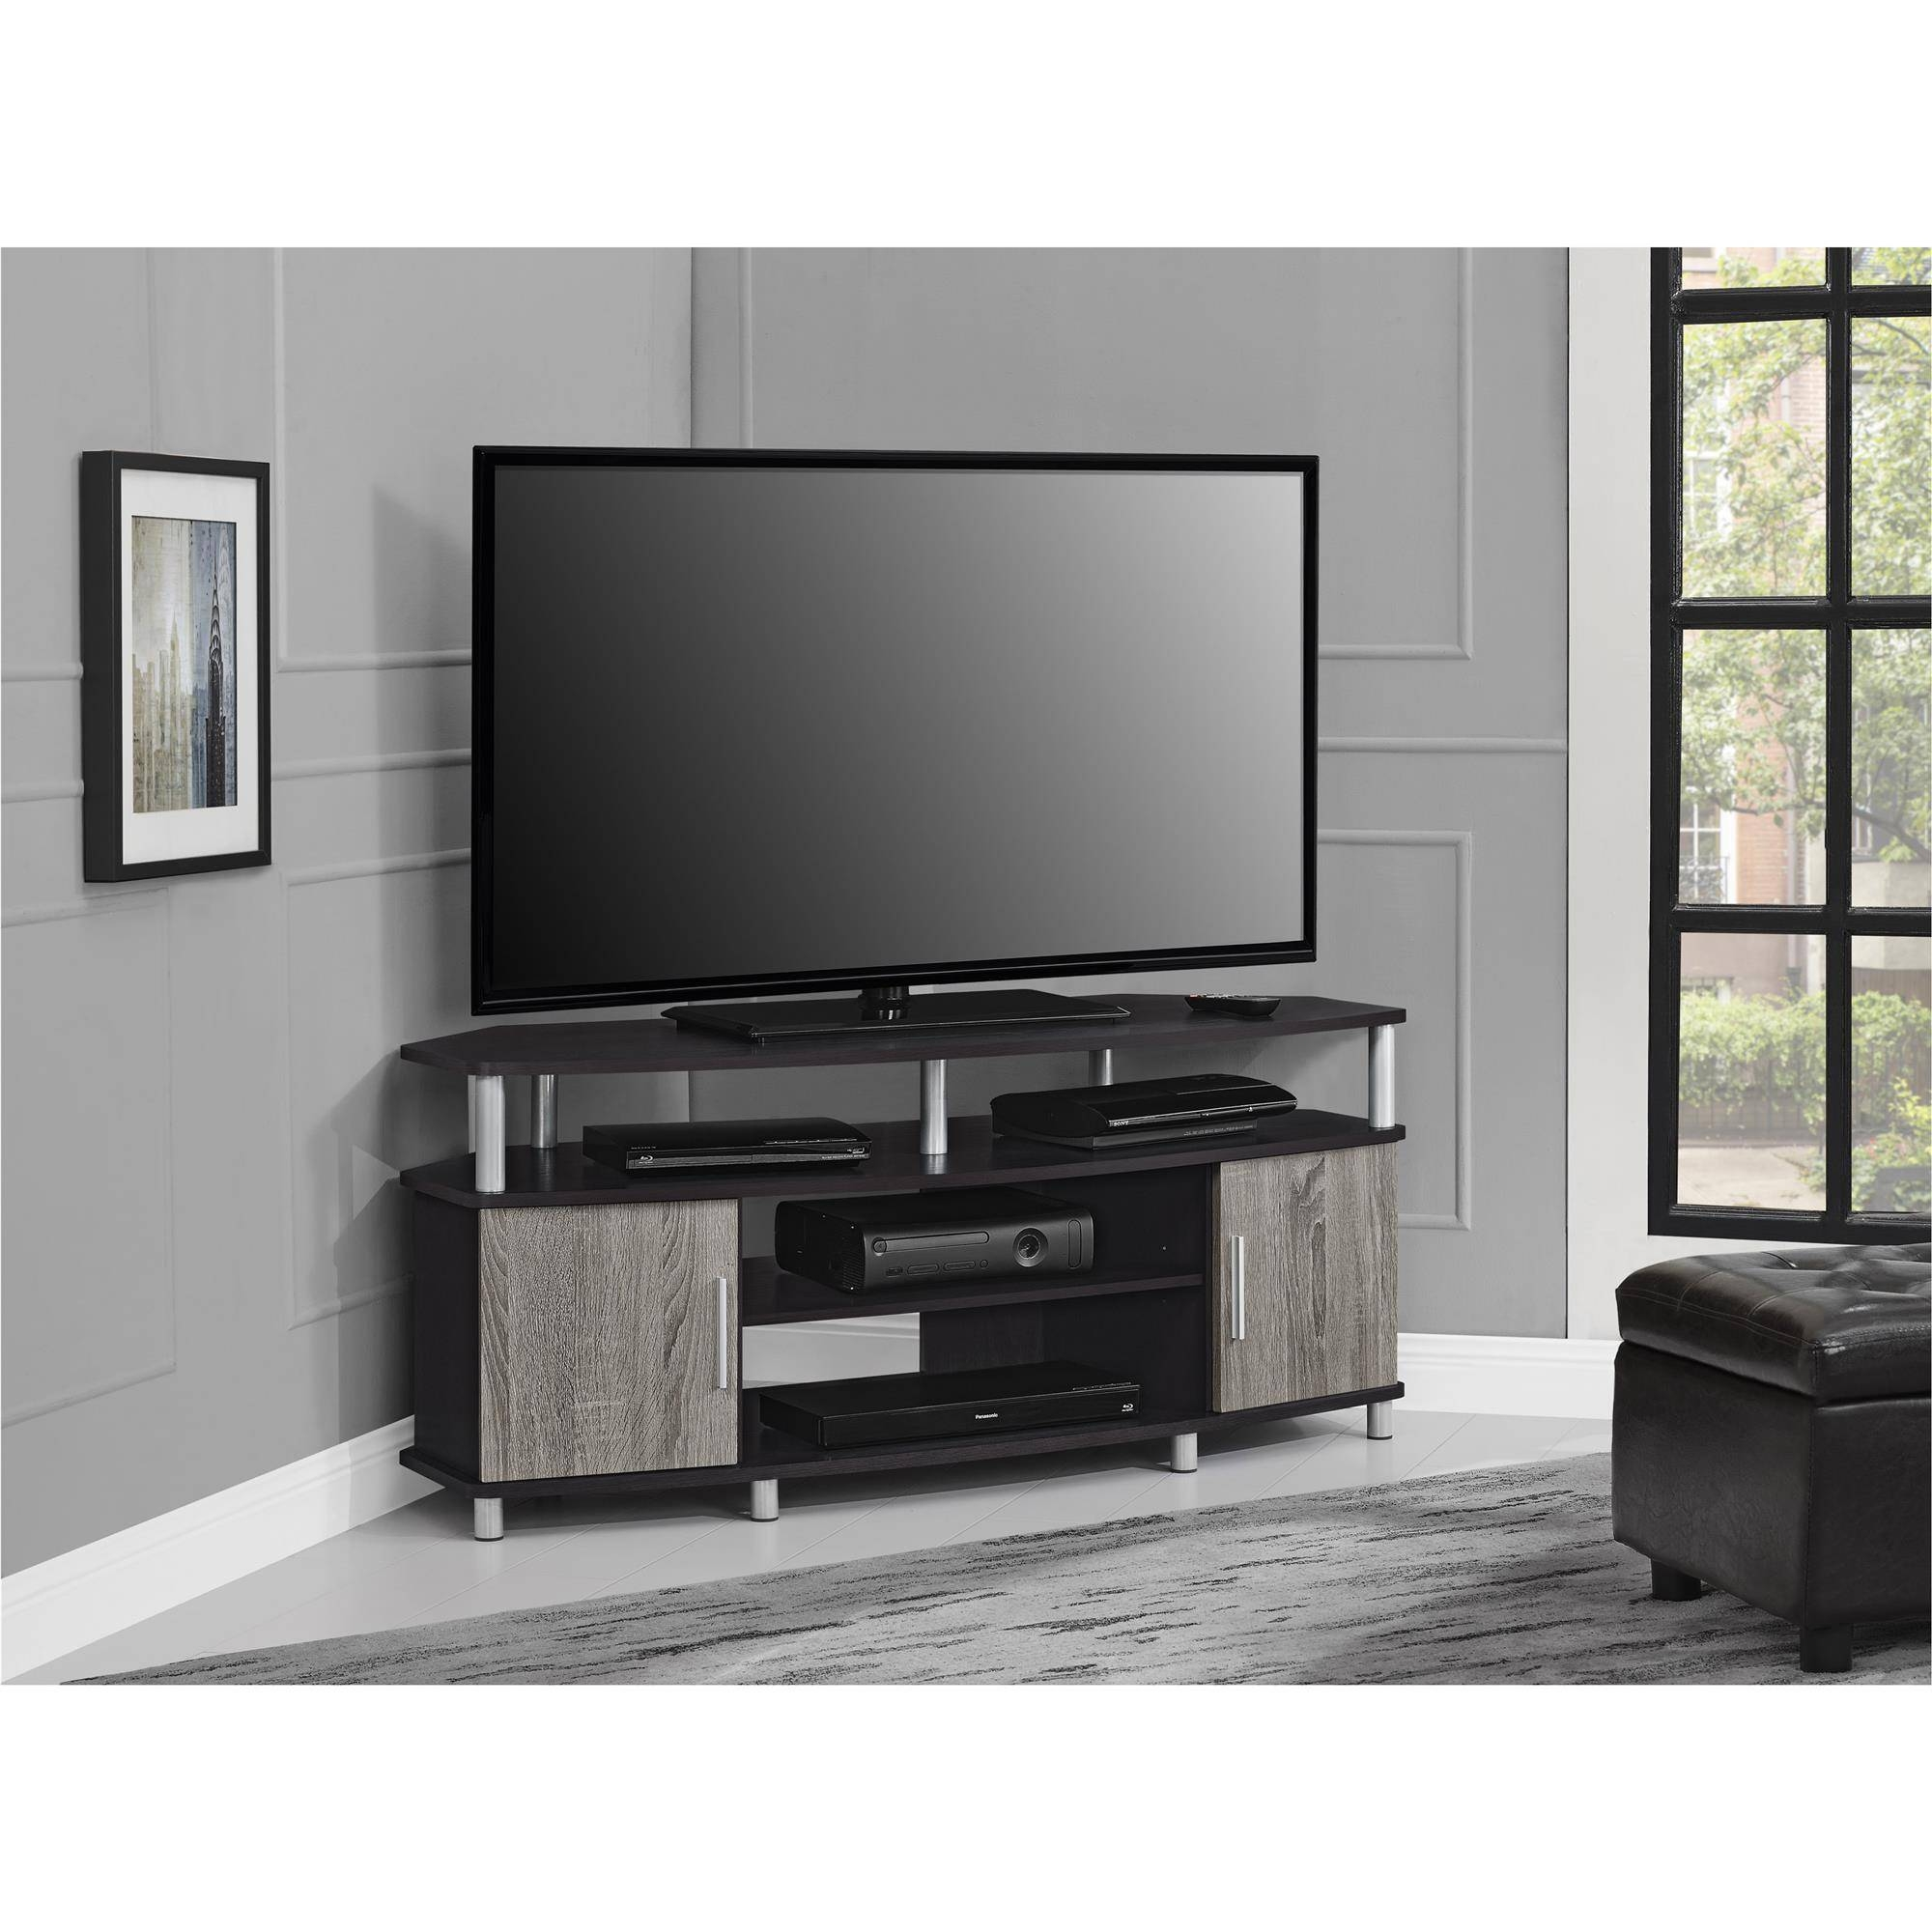 Ameriwood Furniture | Carson Corner Tv Stand For Tvs Up To 50 with regard to 50 Inch Corner Tv Cabinets (Image 2 of 15)